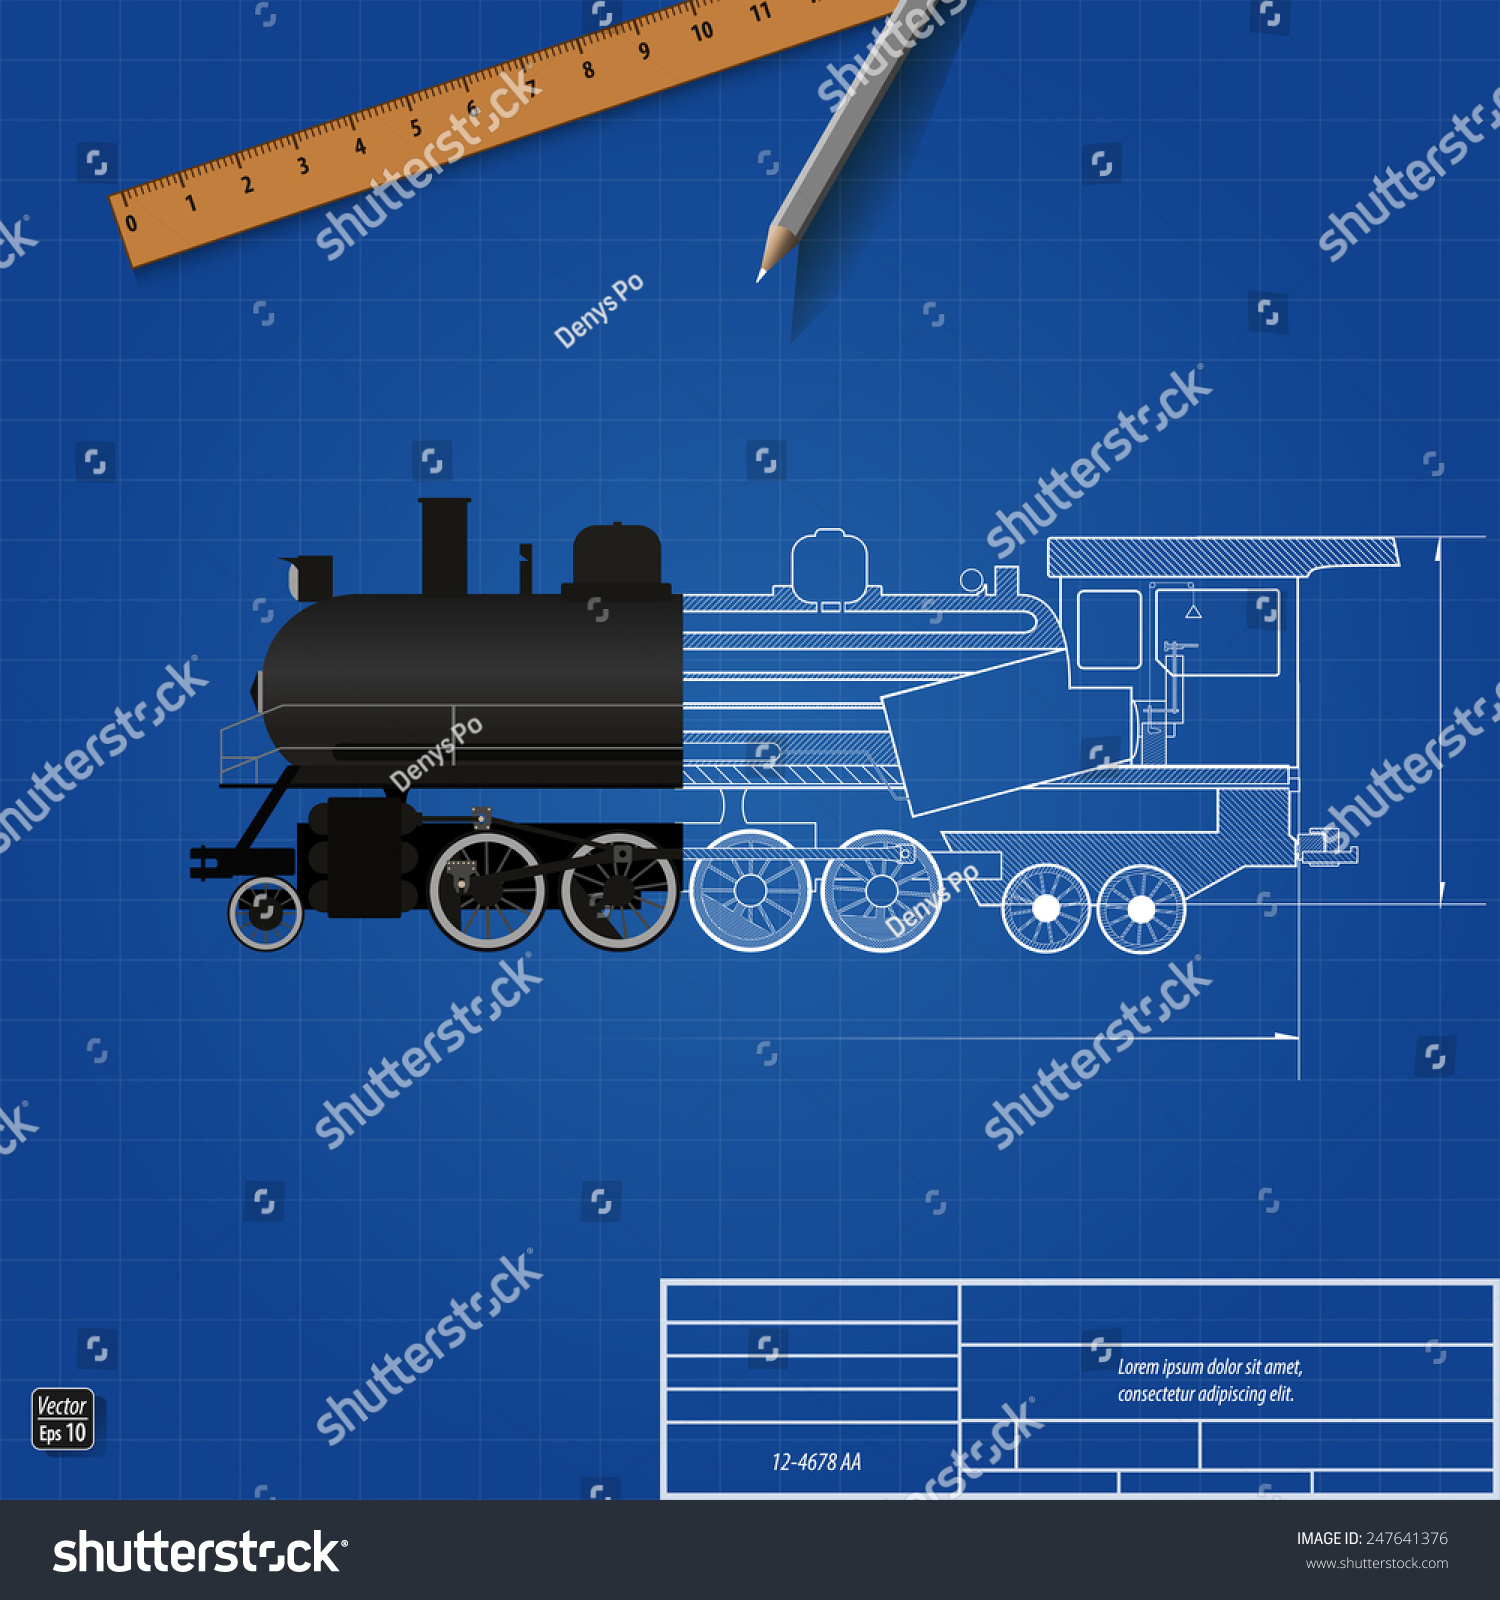 Blueprint Old Steam Locomotive Sectional Drawing Stock Vector Engine Diagram Illustration Eps 10